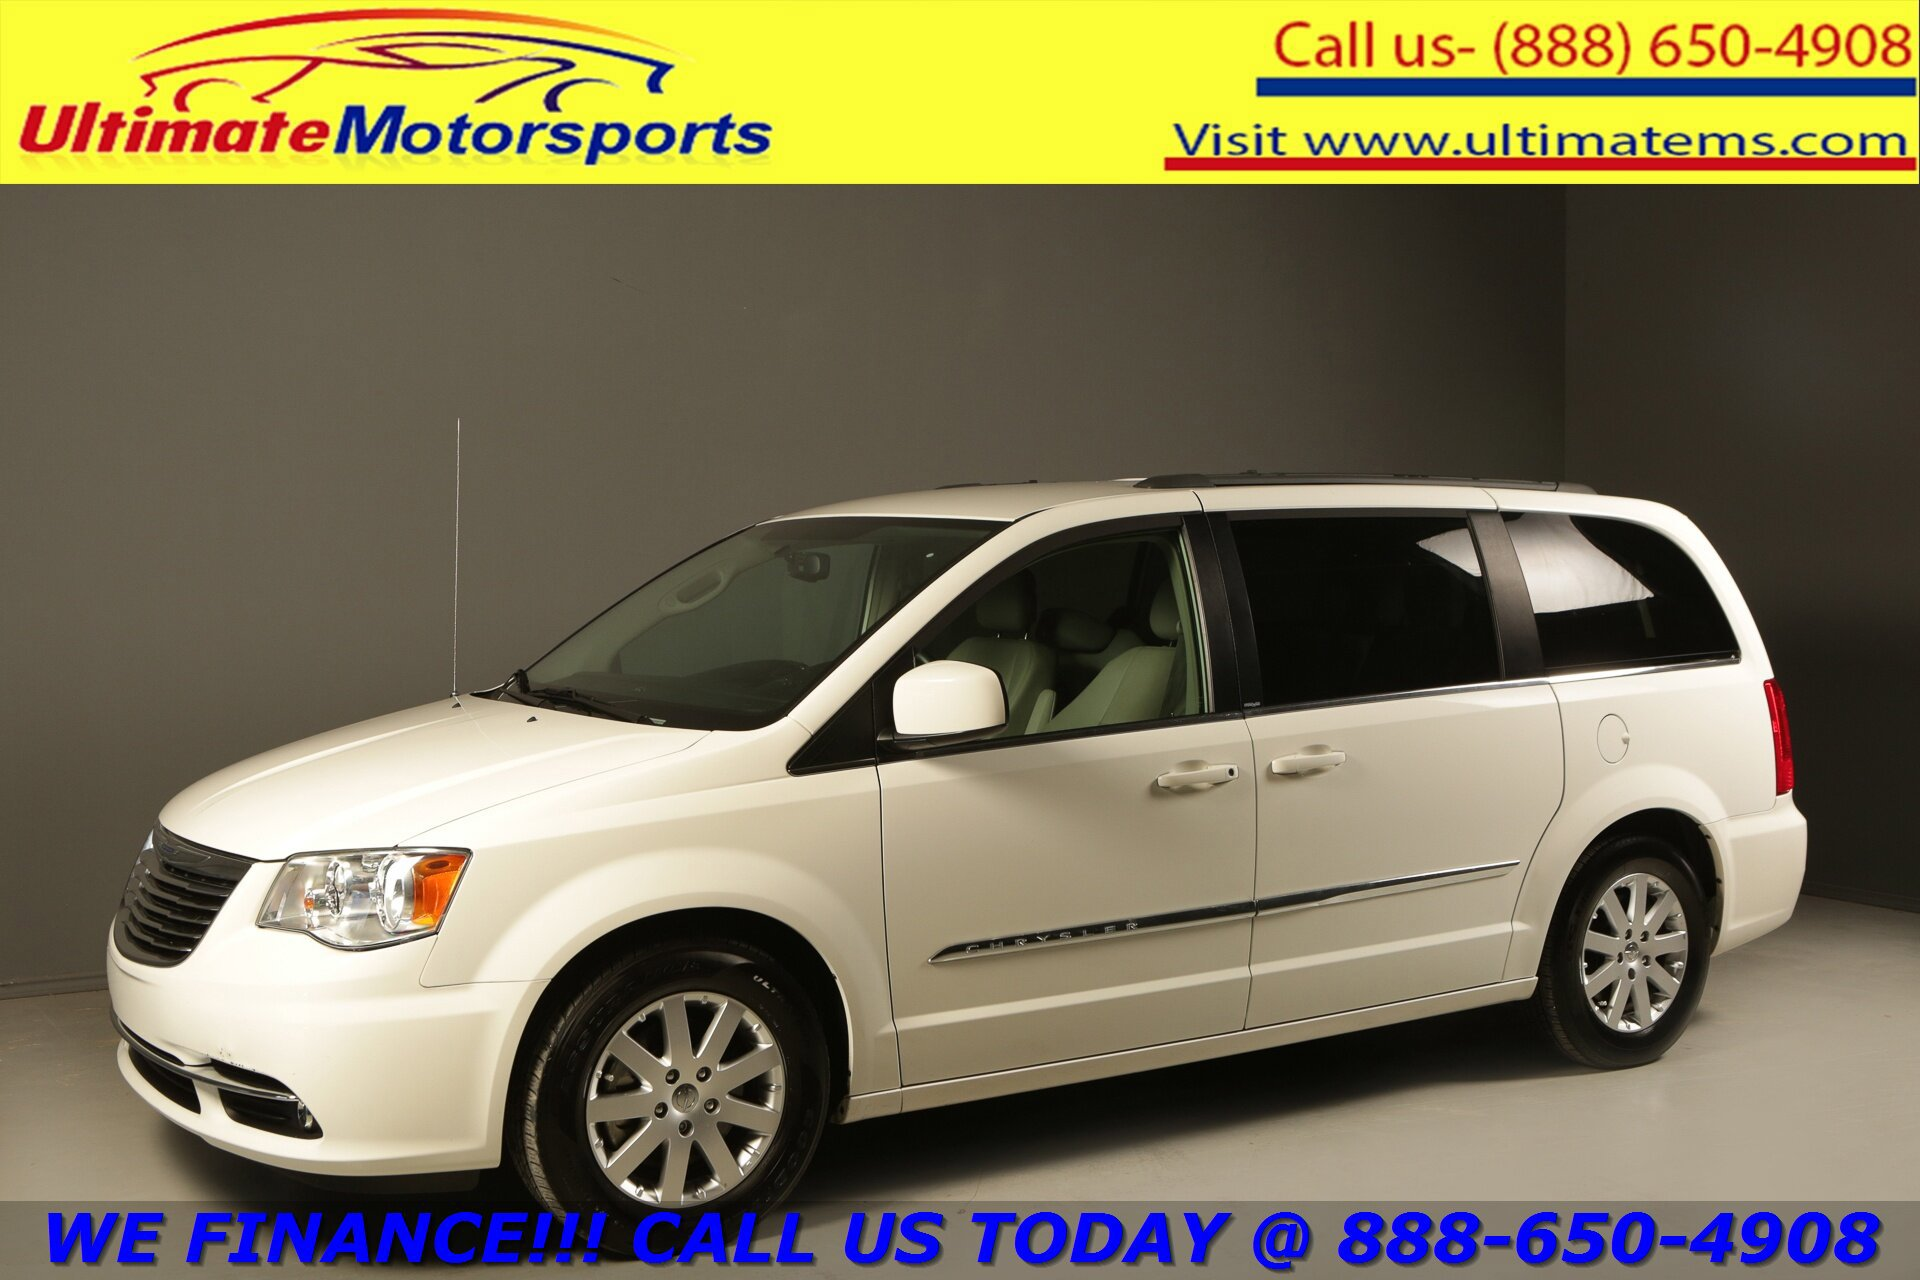 2013 Chrysler Town & Country Touring image